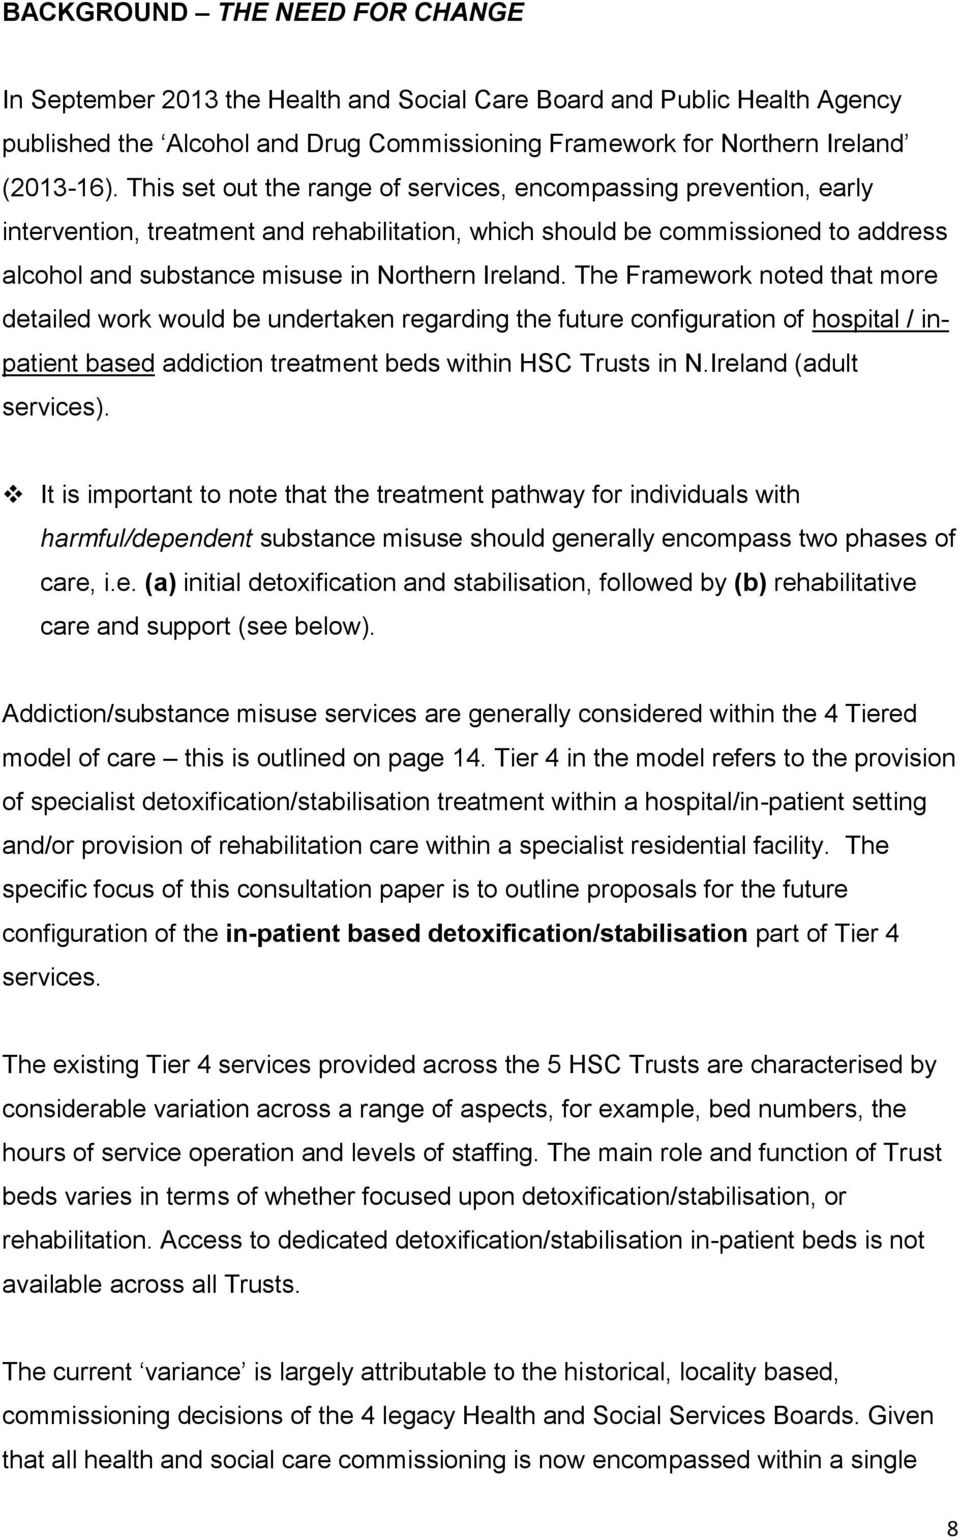 The Framework noted that more detailed work would be undertaken regarding the future configuration of hospital / inpatient based addiction treatment beds within HSC Trusts in N.